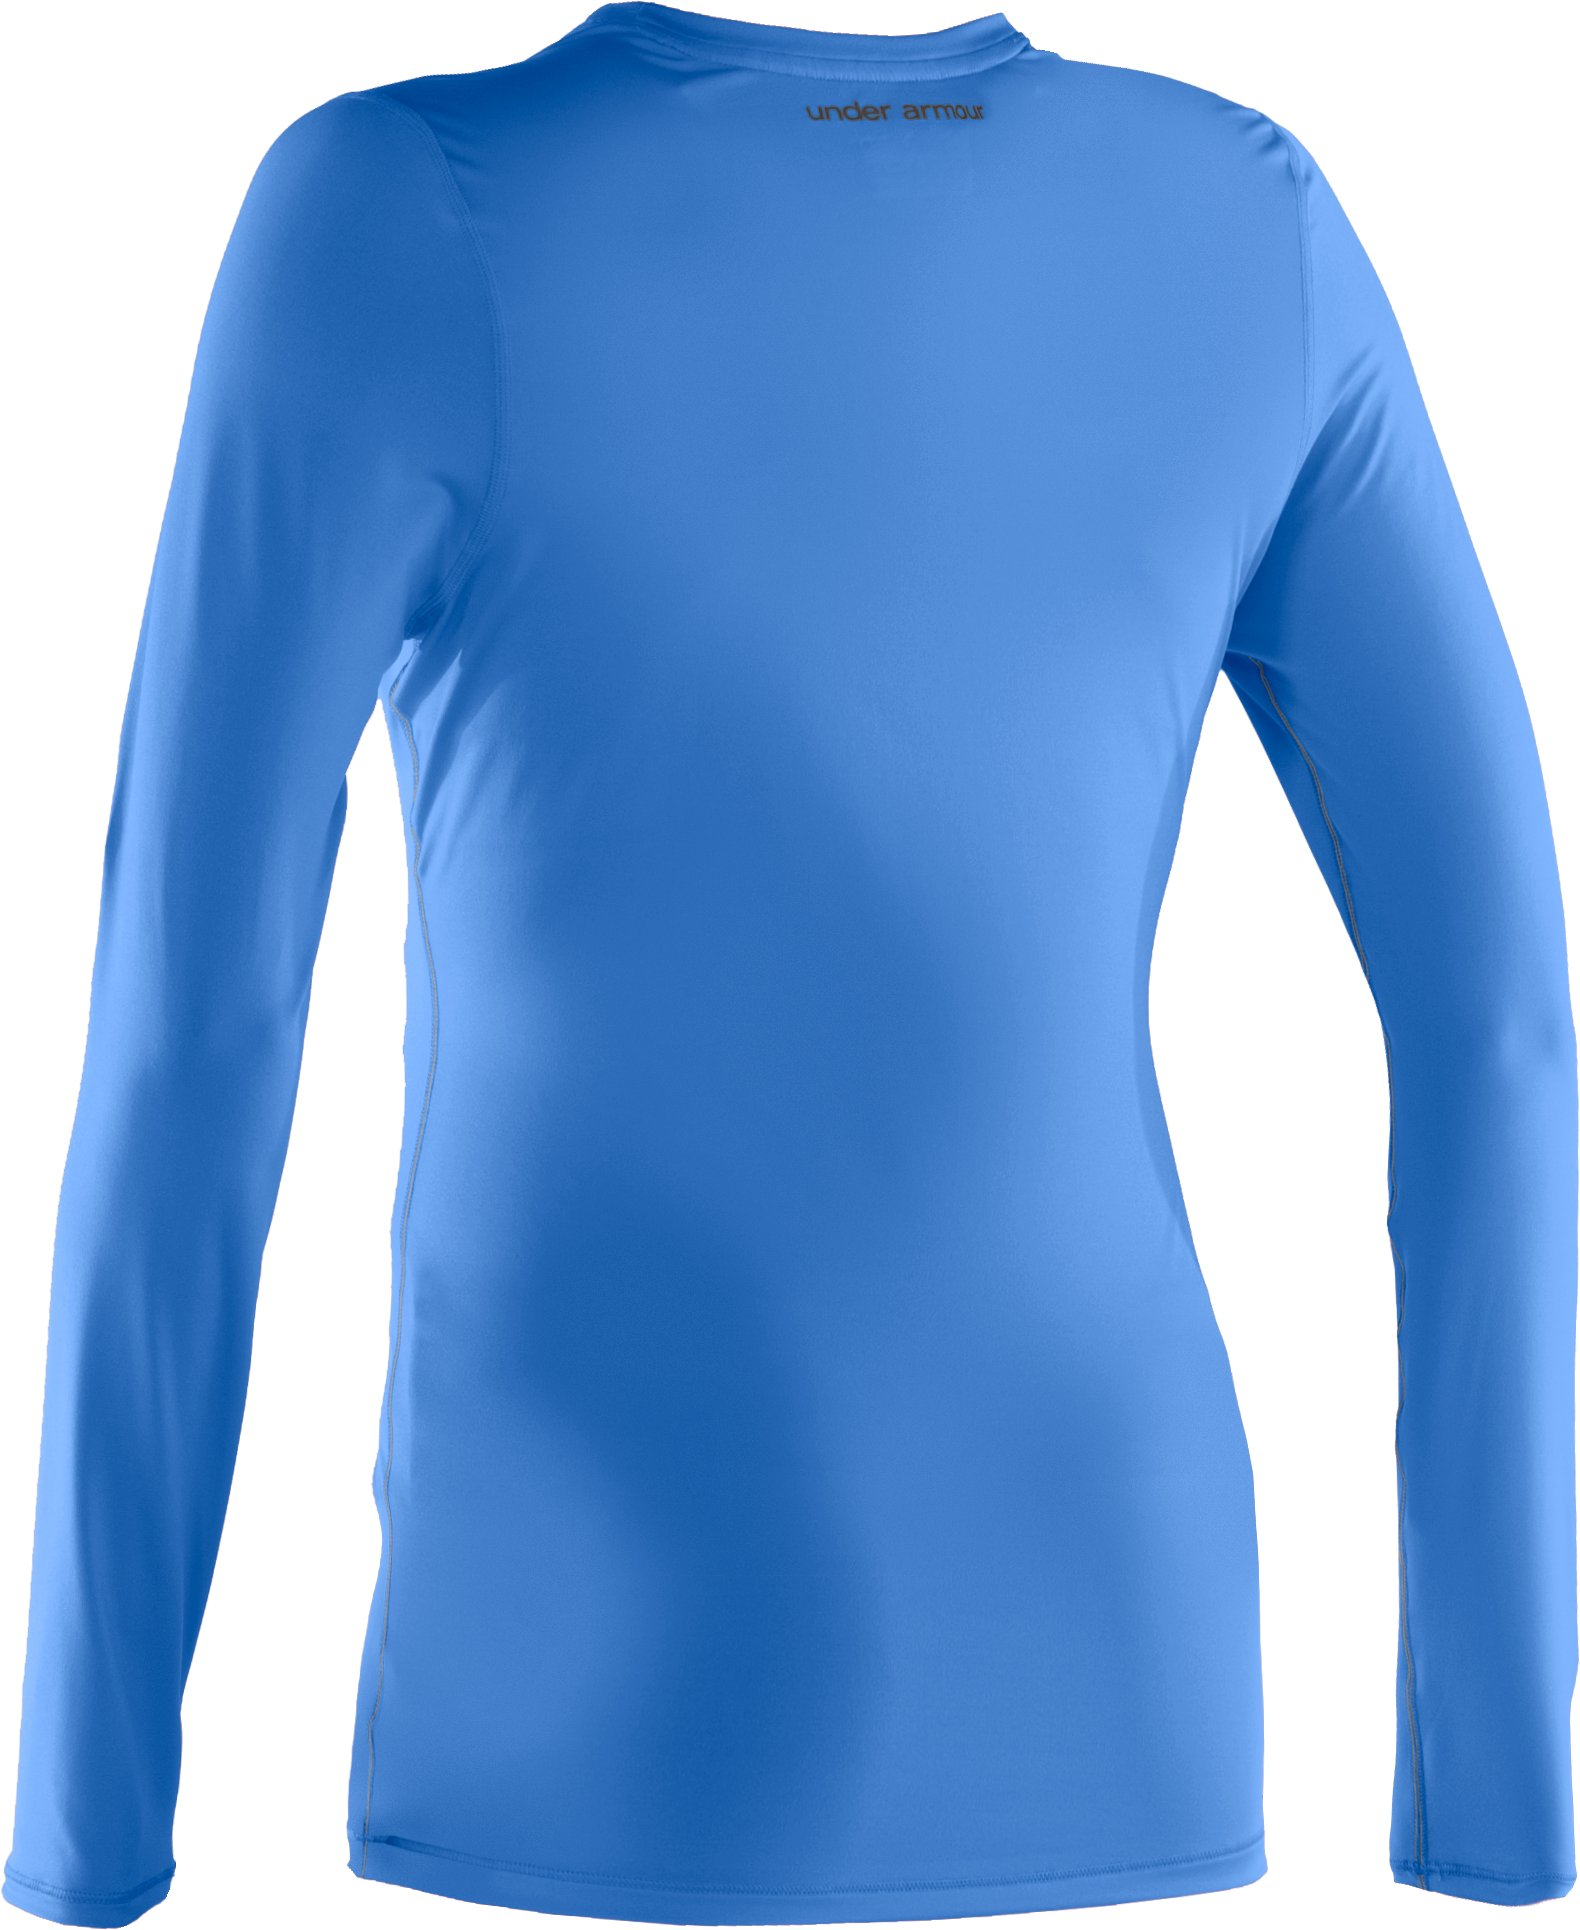 Women's HeatGear® Sonic Long Sleeve, Water